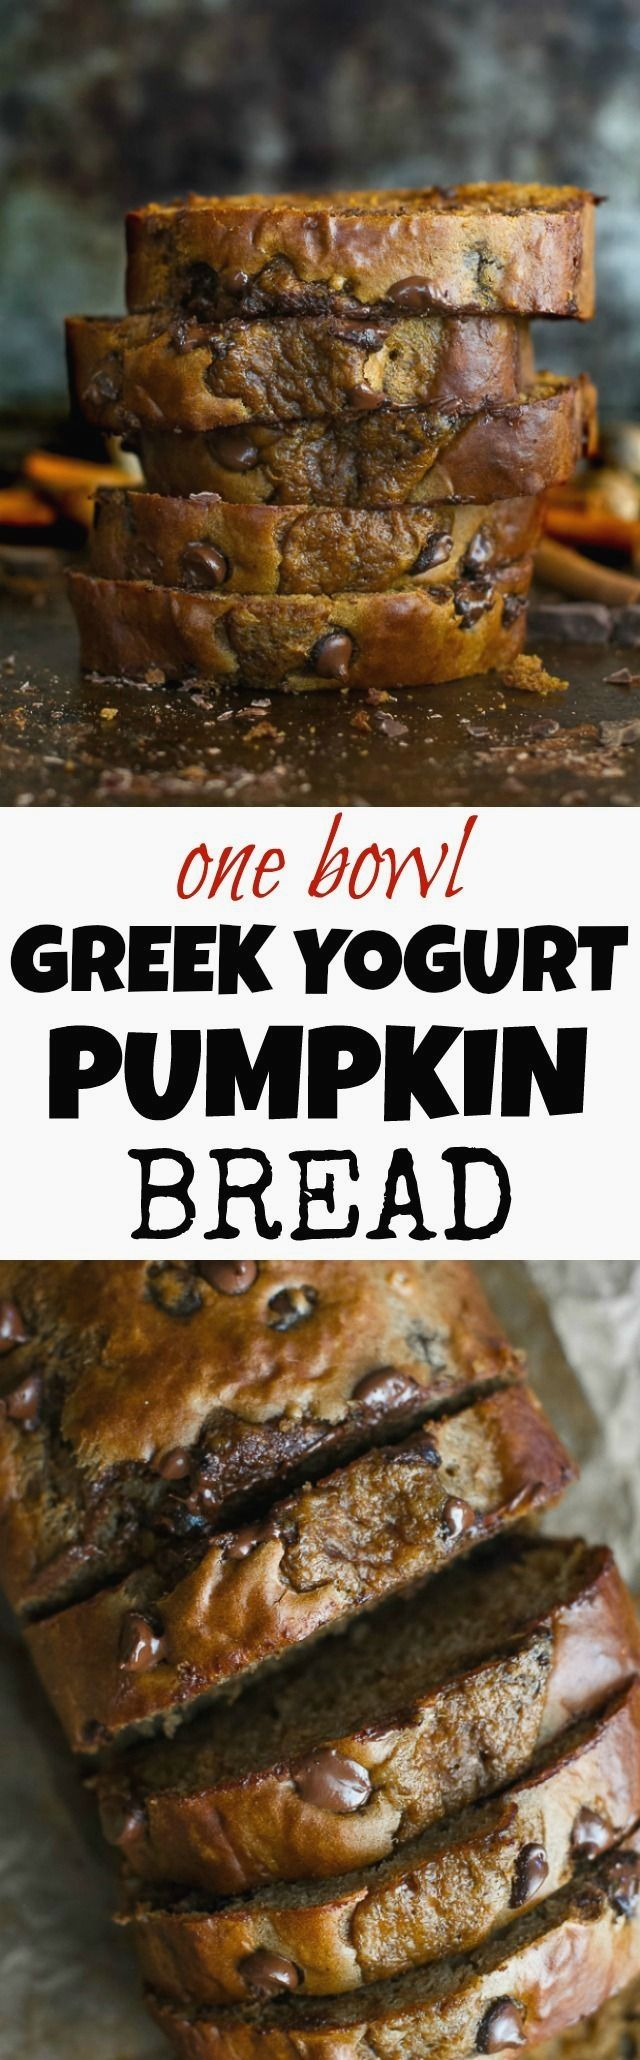 This one bowl Greek yogurt pumpkin bread is made without ...